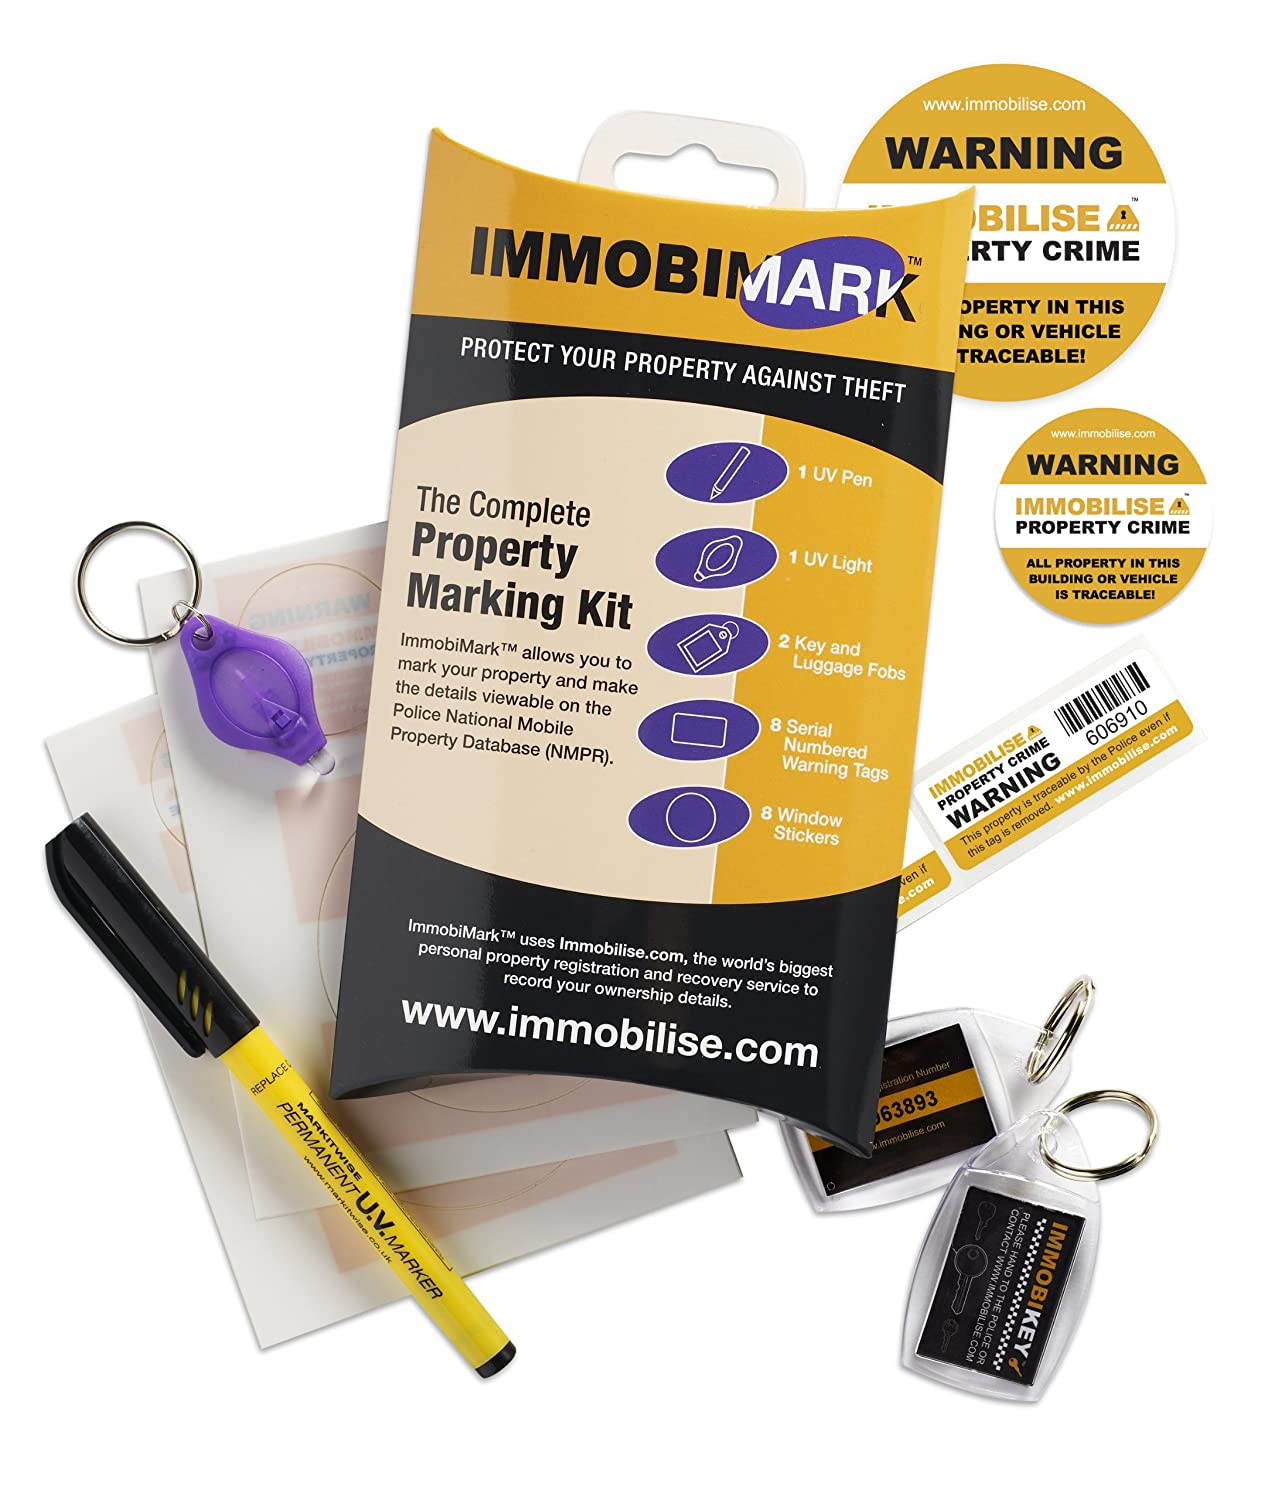 Buy a property marking kit on Amazon now!